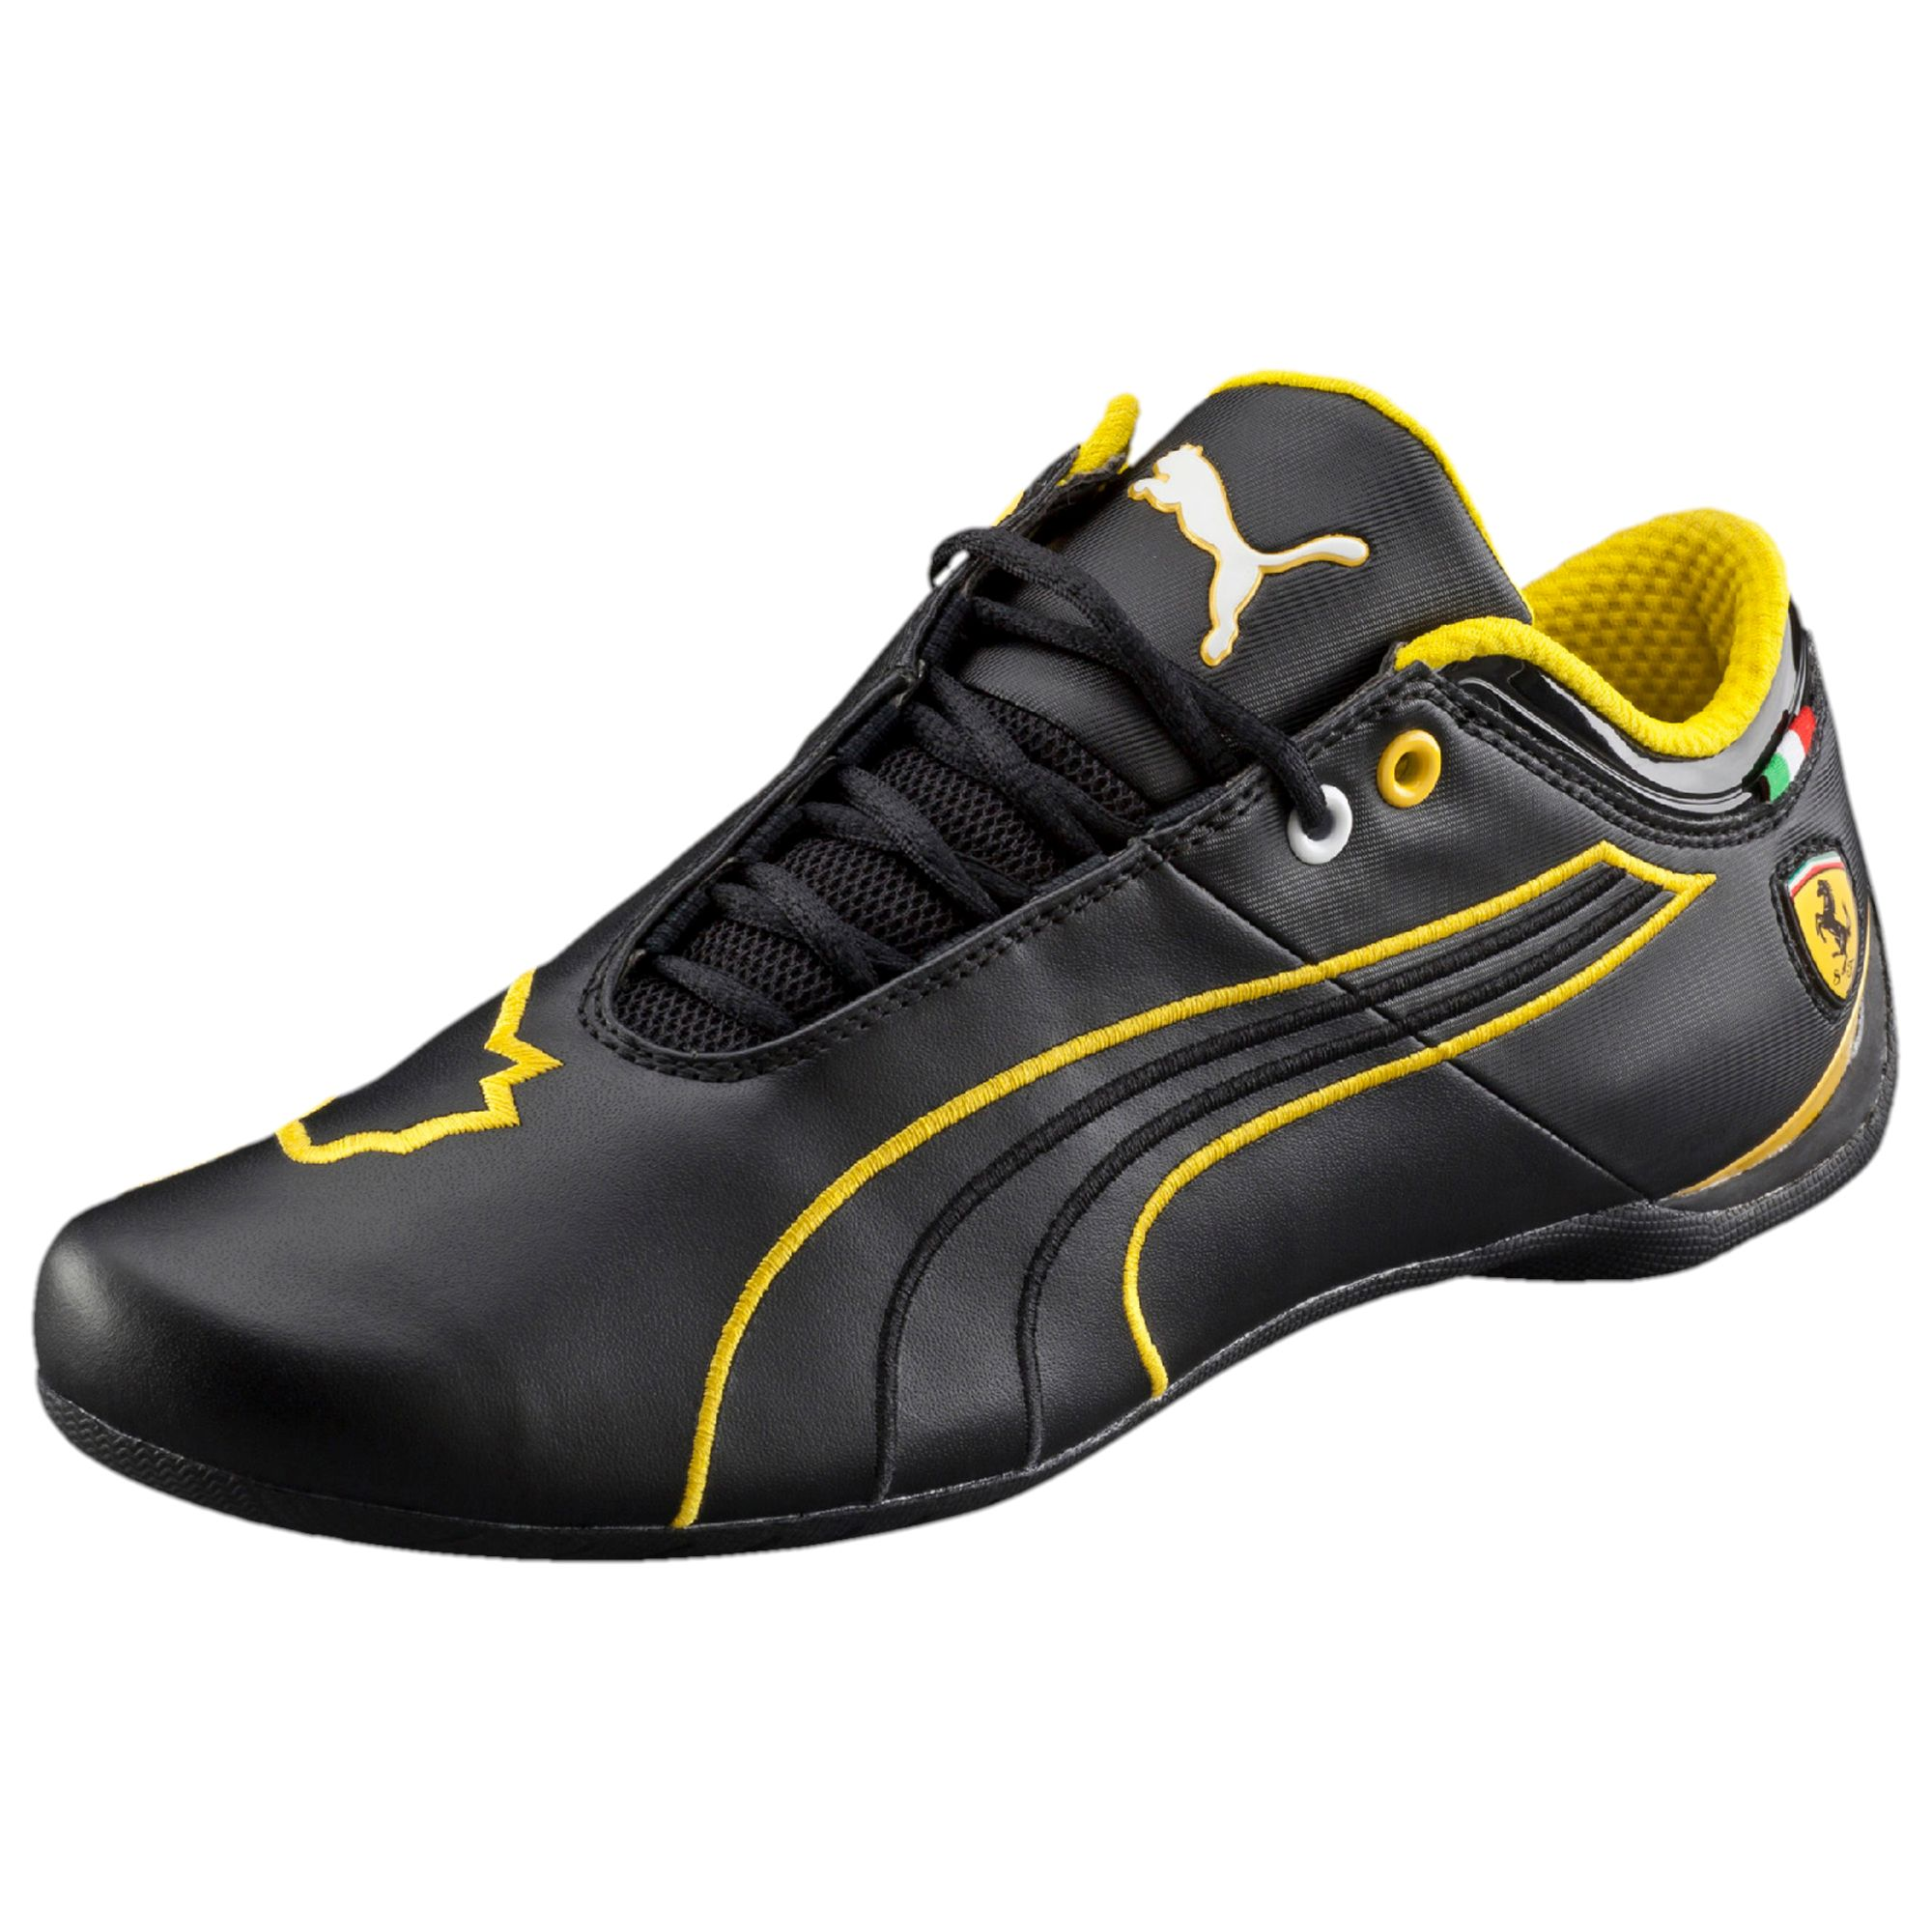 puma ferrari future cat m1 sneaker schuhe motorsport. Black Bedroom Furniture Sets. Home Design Ideas